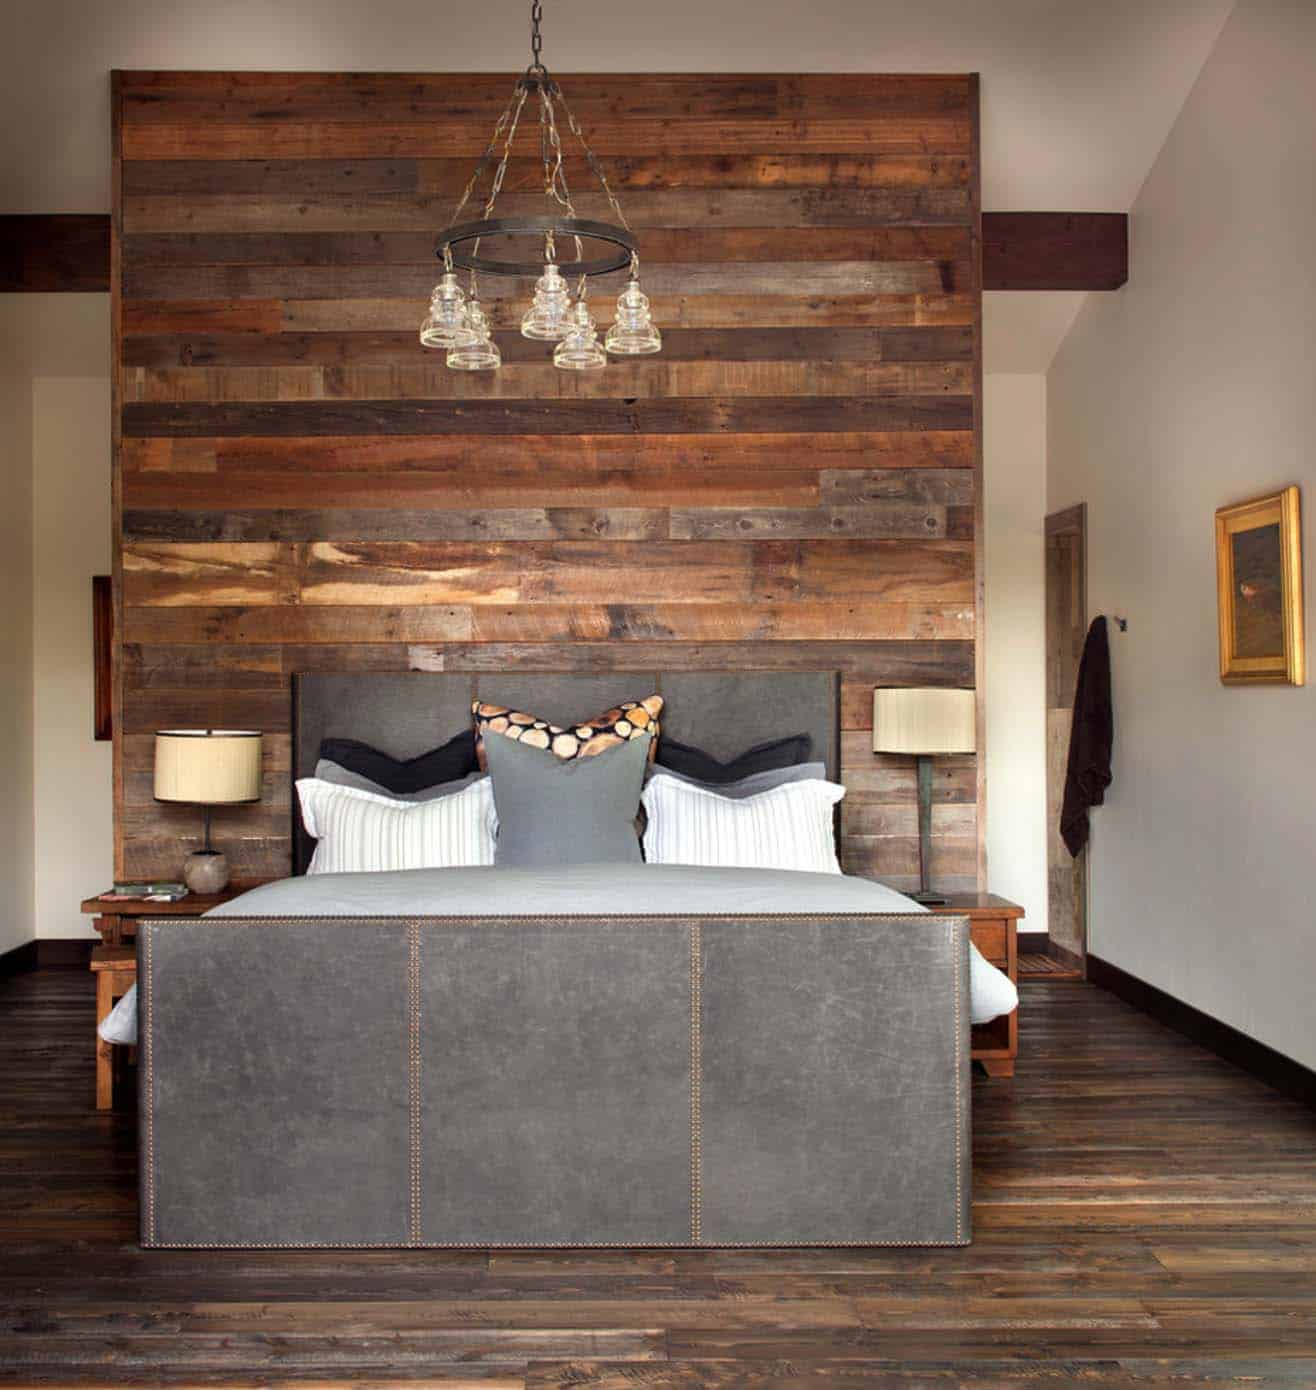 Mountain Home Decor: Rustic-modern Dwelling Nestled In The Northern Rocky Mountains